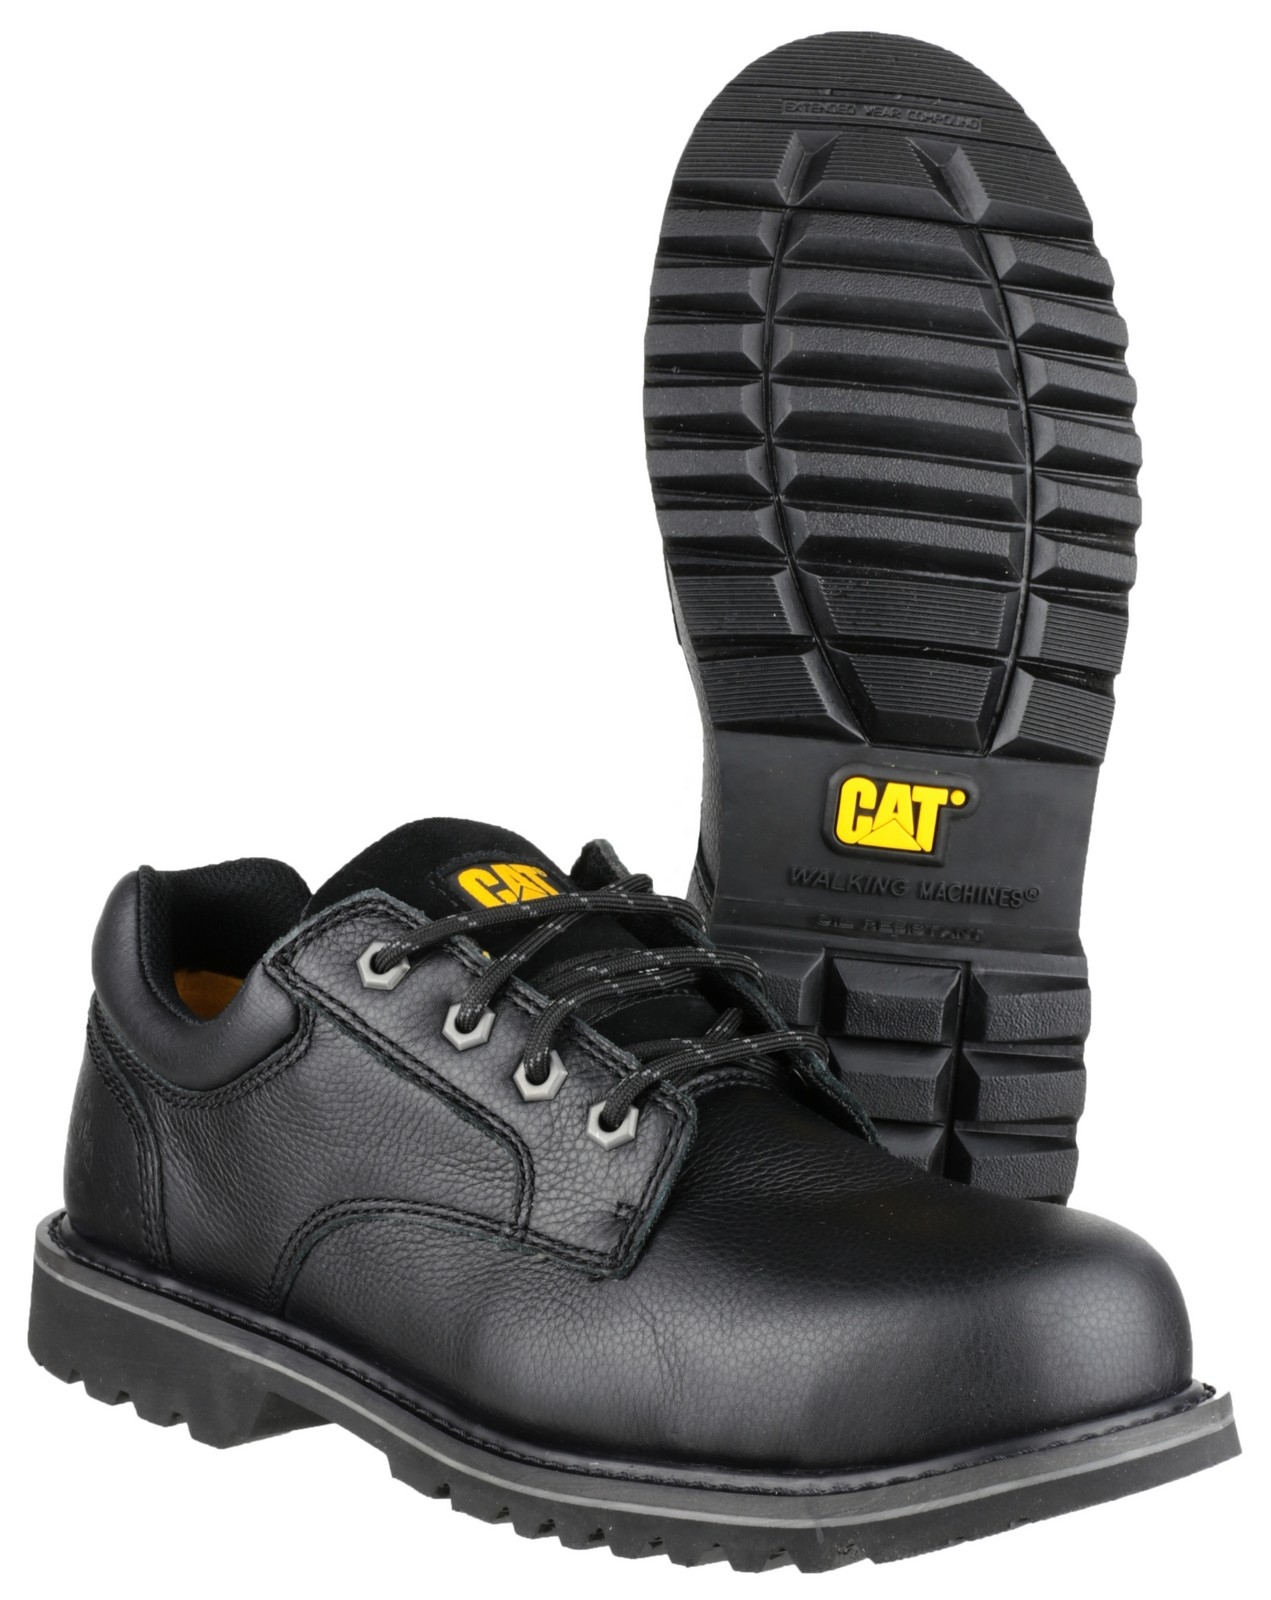 Caterpillar Safety Shoes Price List